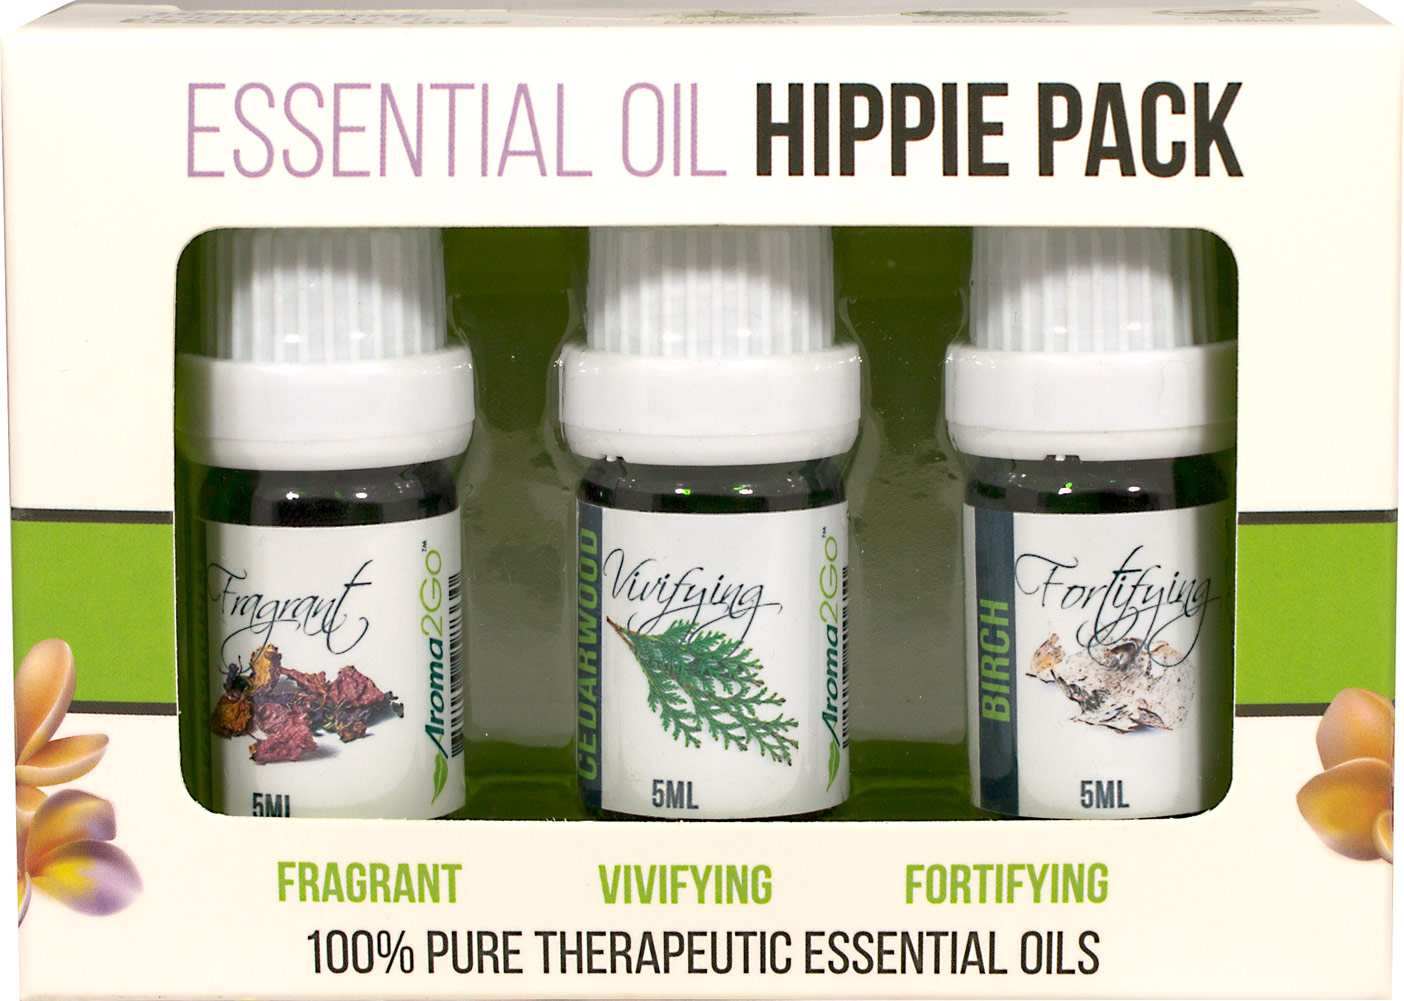 Essential Oil Hippie Pack